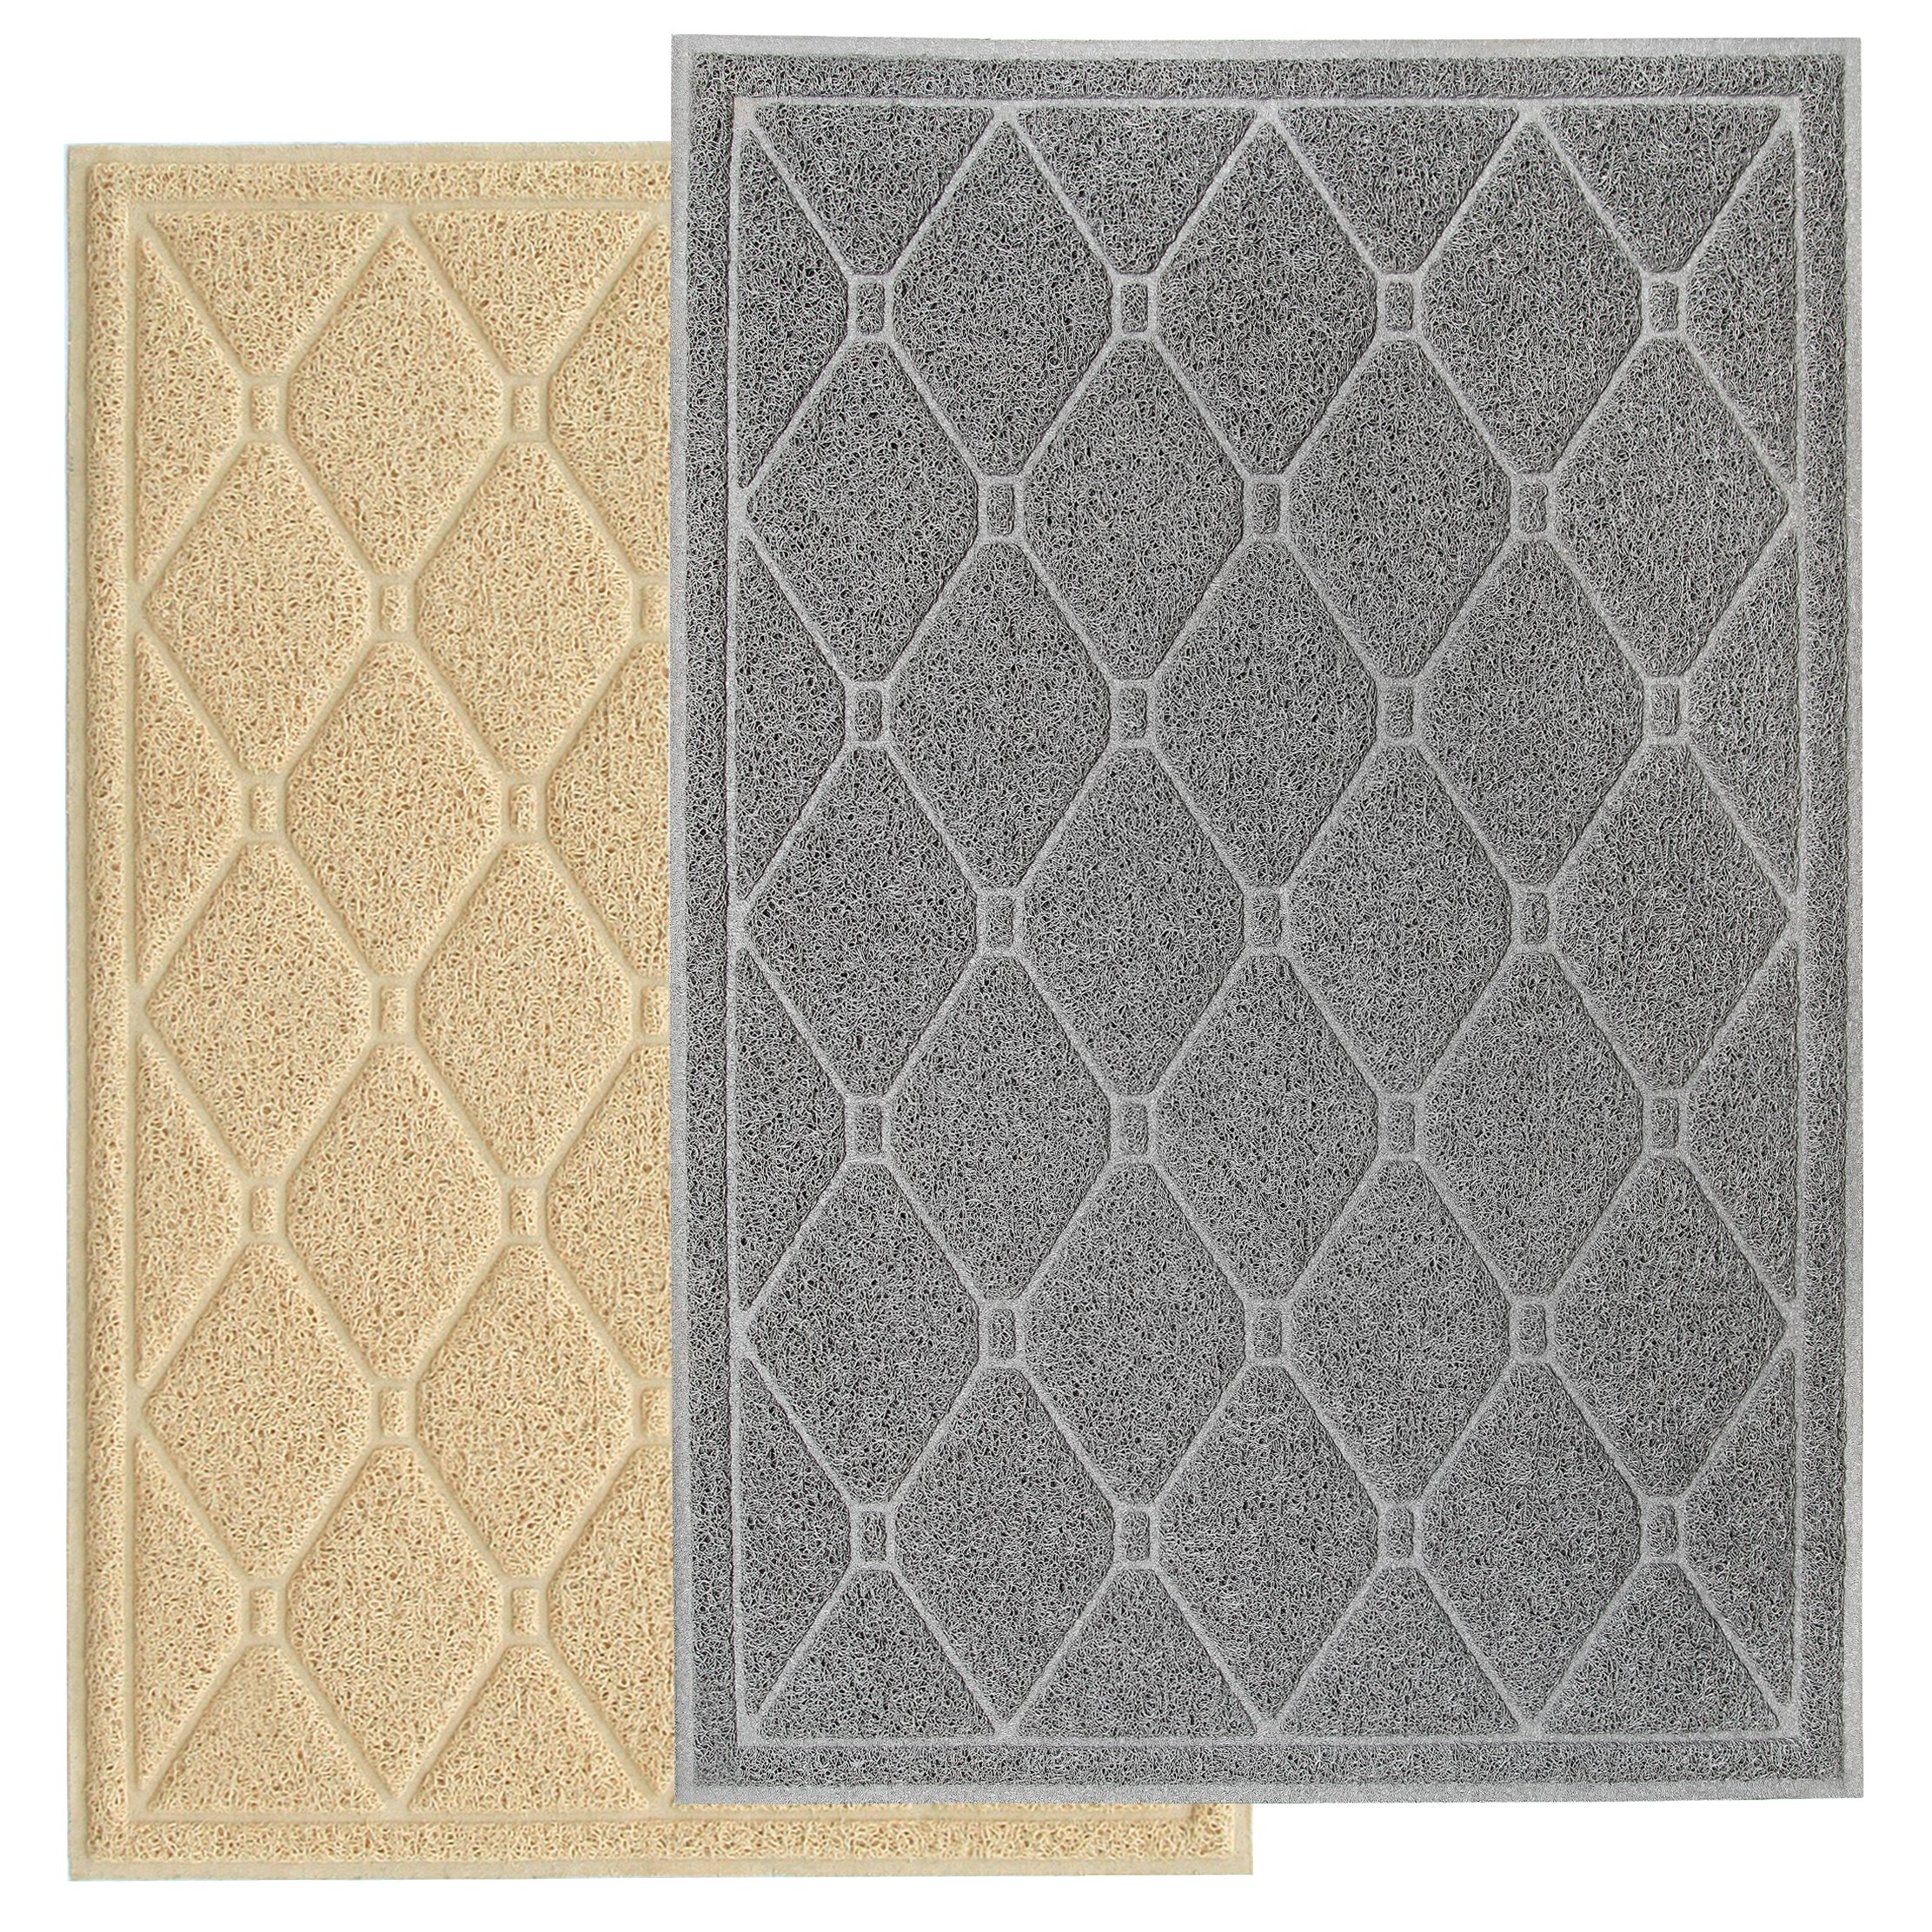 Pet Pagoda Premium Quality Extra Large Litter Trapping Mat for Scatter Control Featuring Durability, Comfort, Water & Urine Resistance & Easy Cleaning with Unique Attractive Design (Gray)